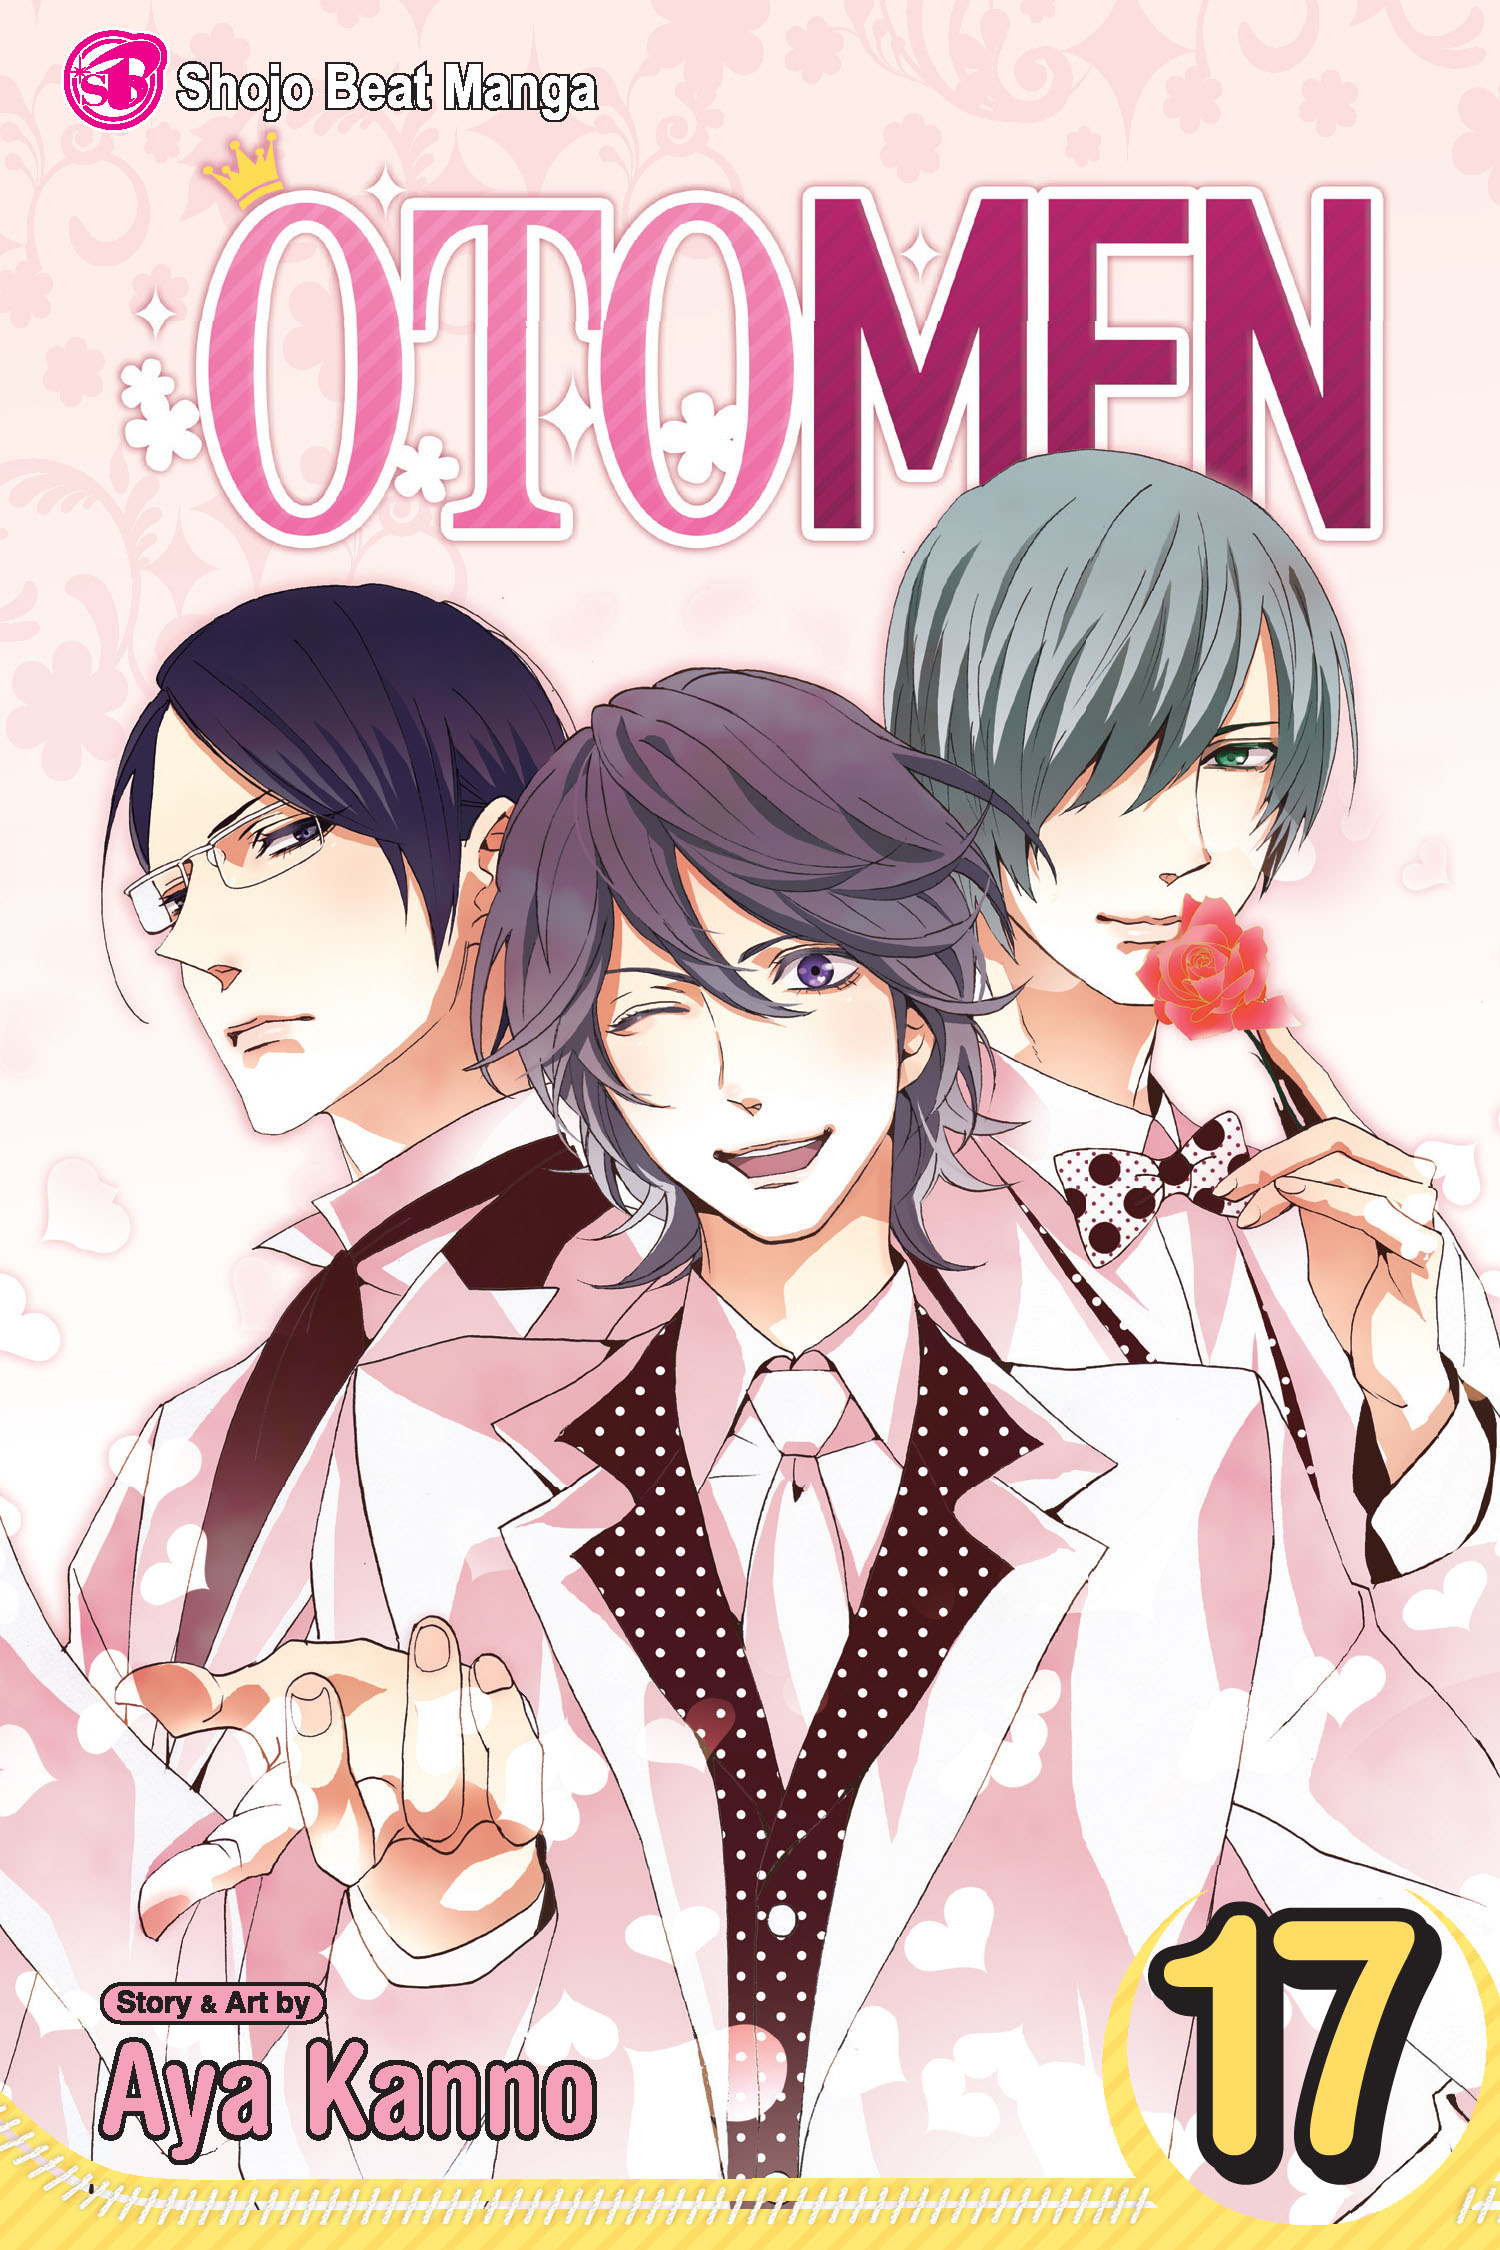 Otomen vol 17 9781421559681 hr